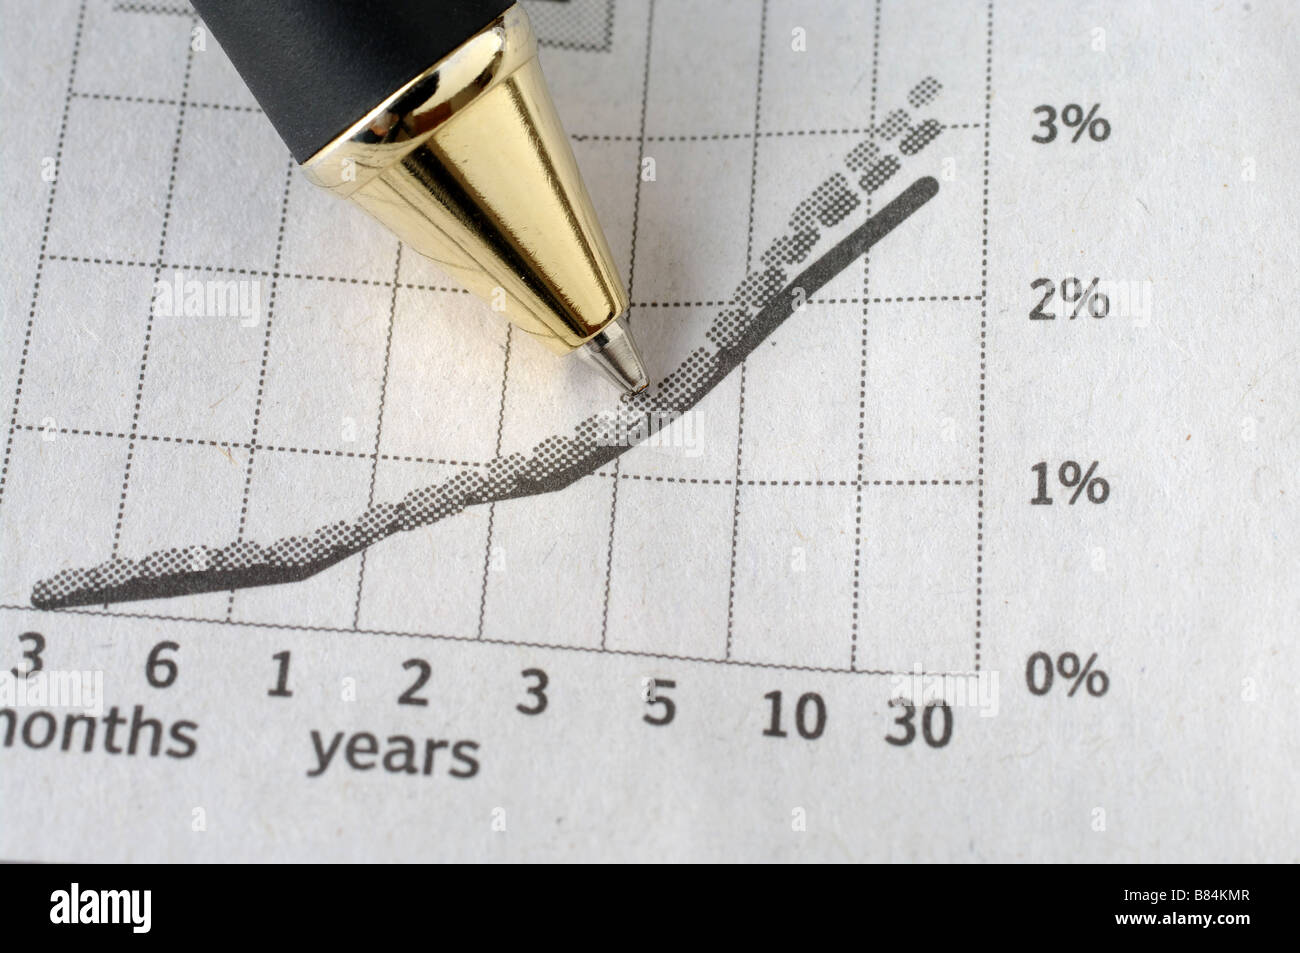 Pen pointing at a financial chart in newspaper - Stock Image